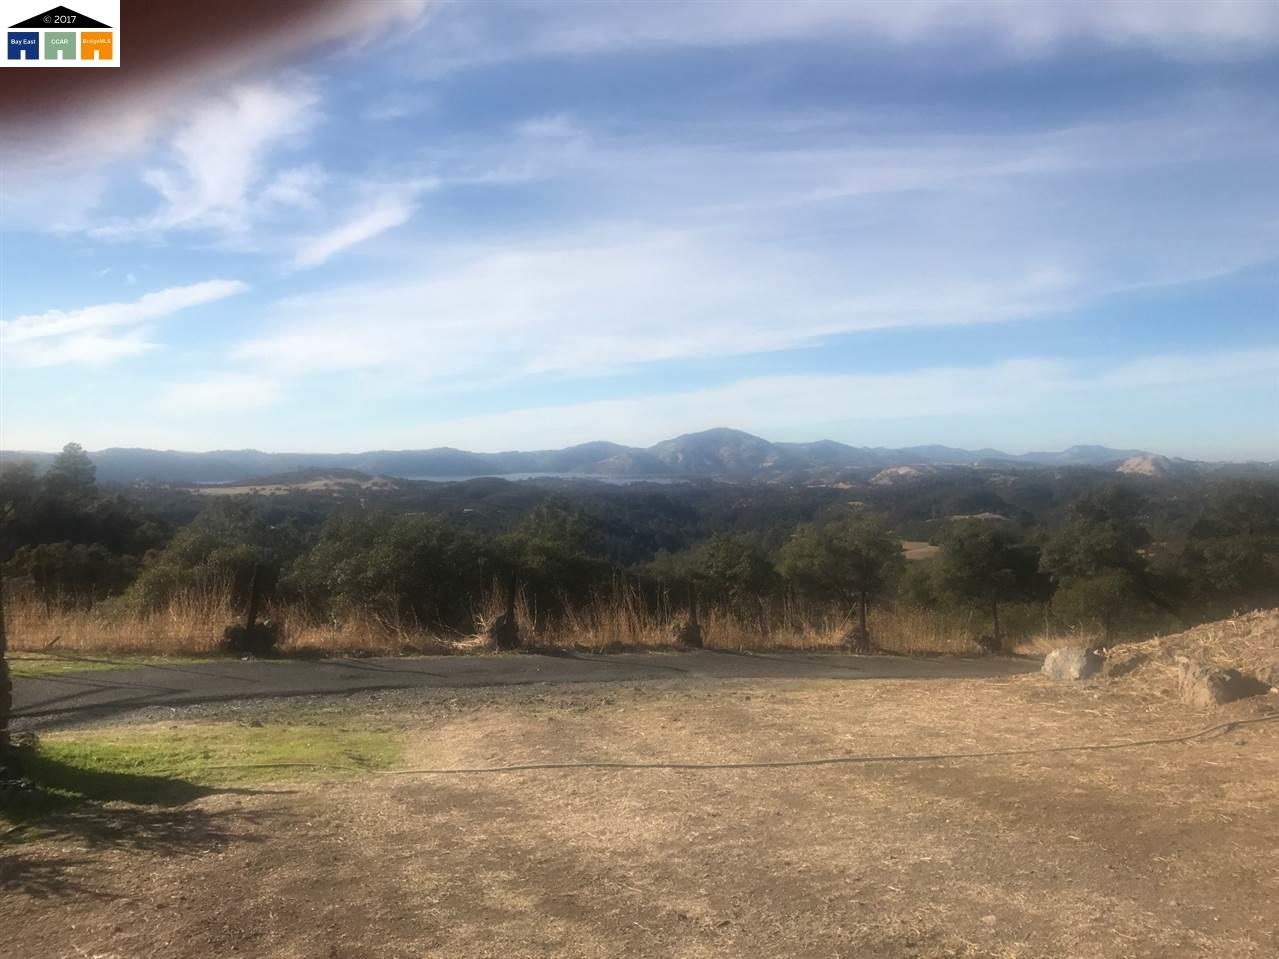 Land for Sale at 19450 Rocky Road 19450 Rocky Road Sonora, California 95370 United States